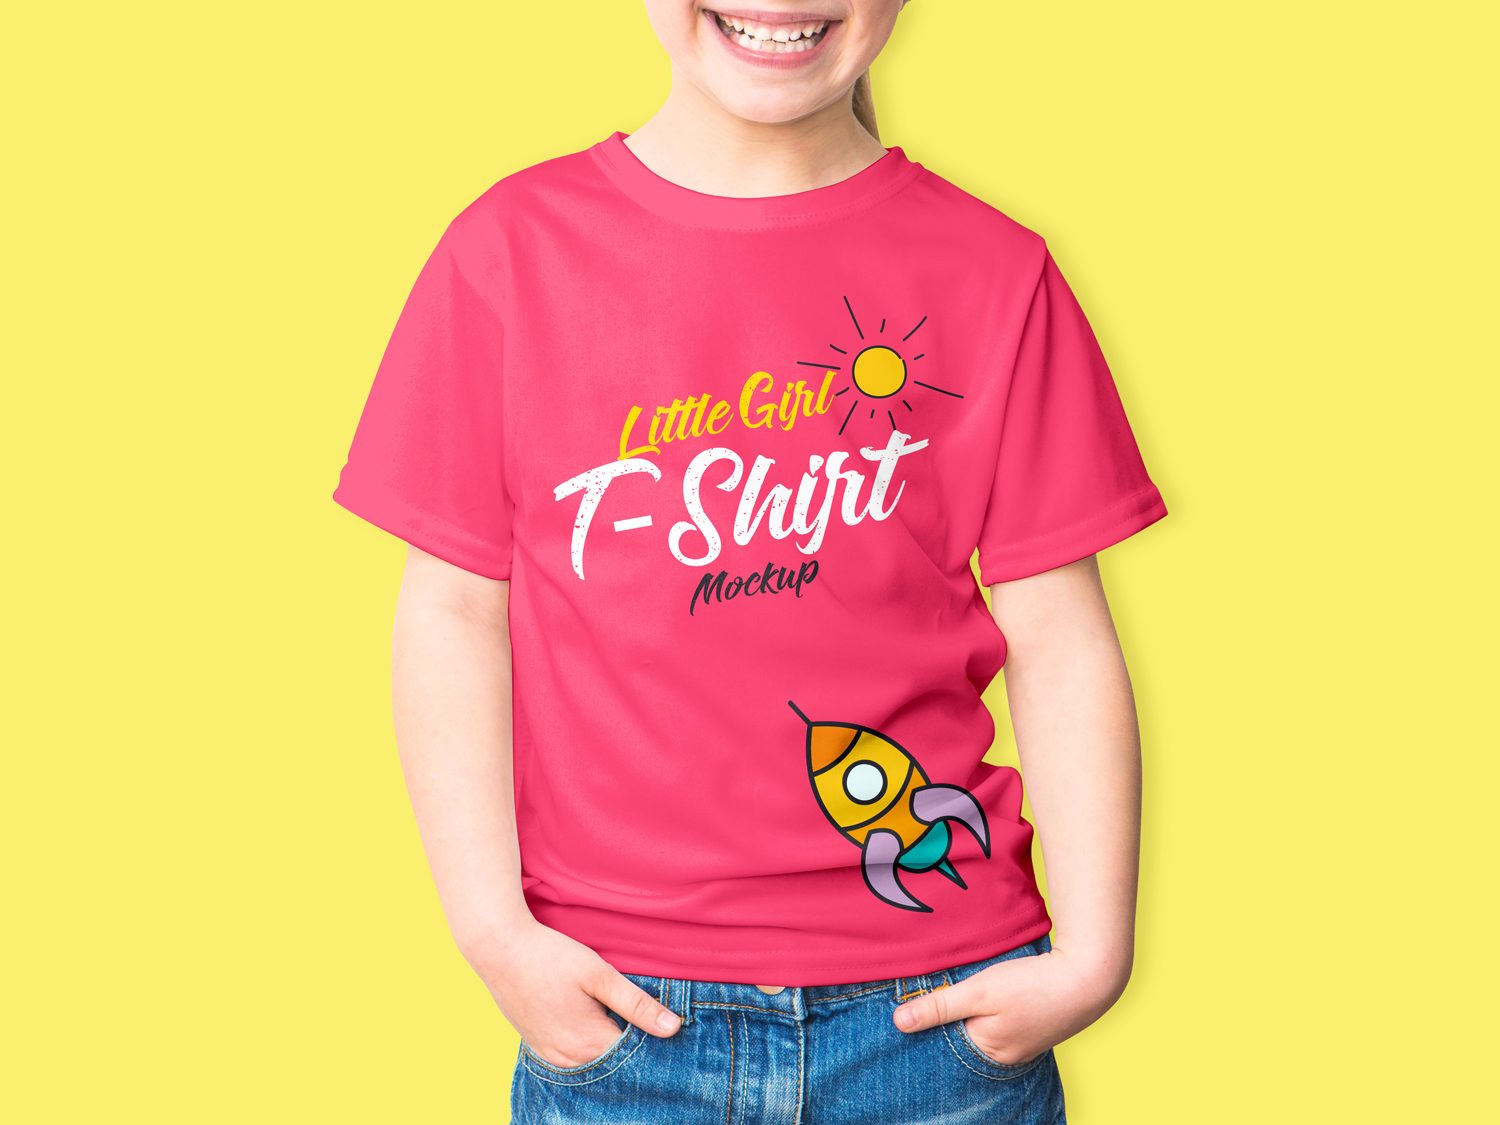 Free Fashionable Girl T-Shirt Mockup